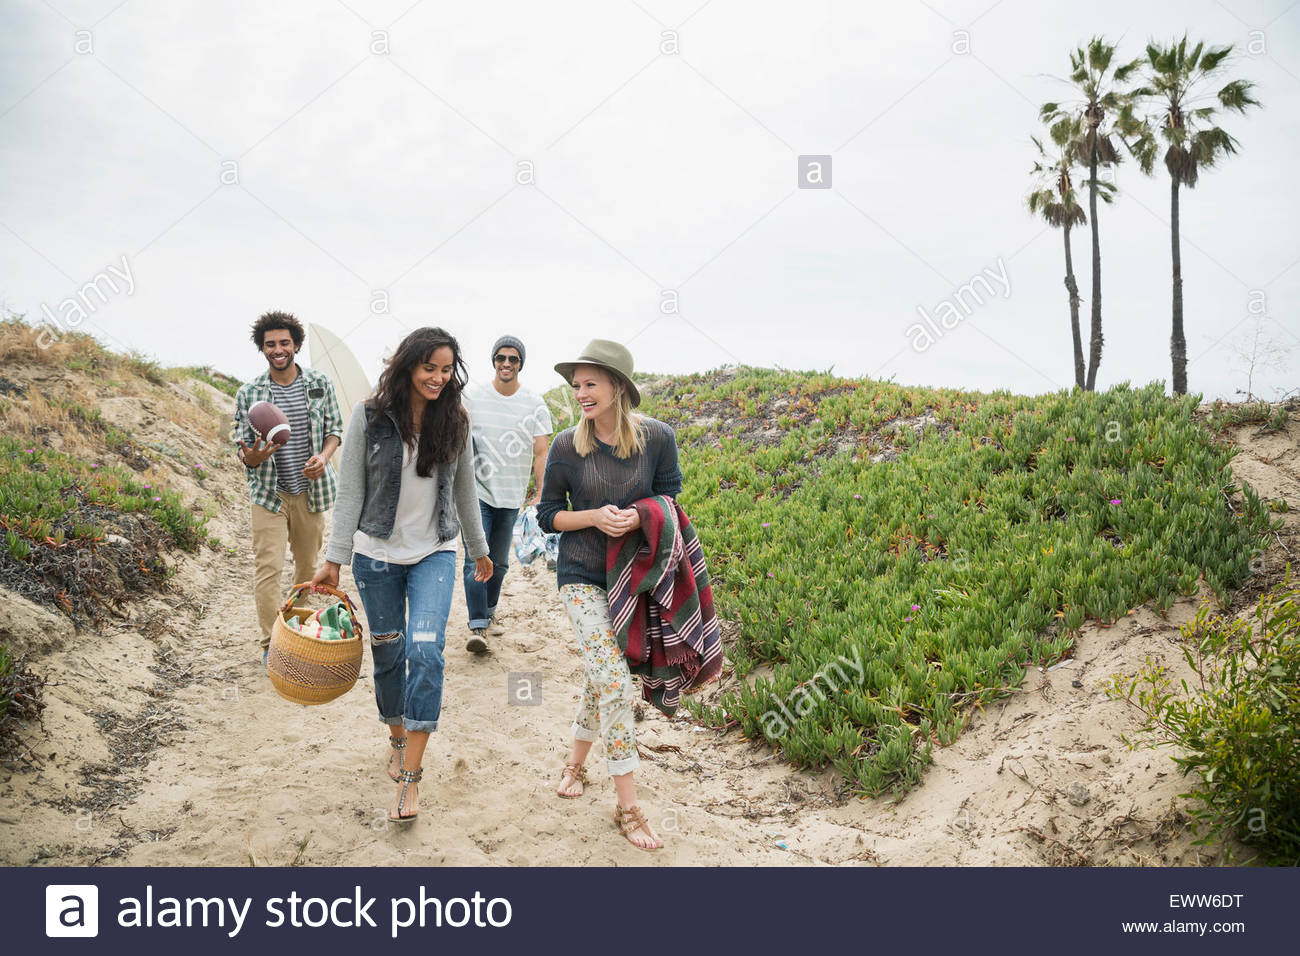 Friends carrying picnic items on beach path - Stock Image